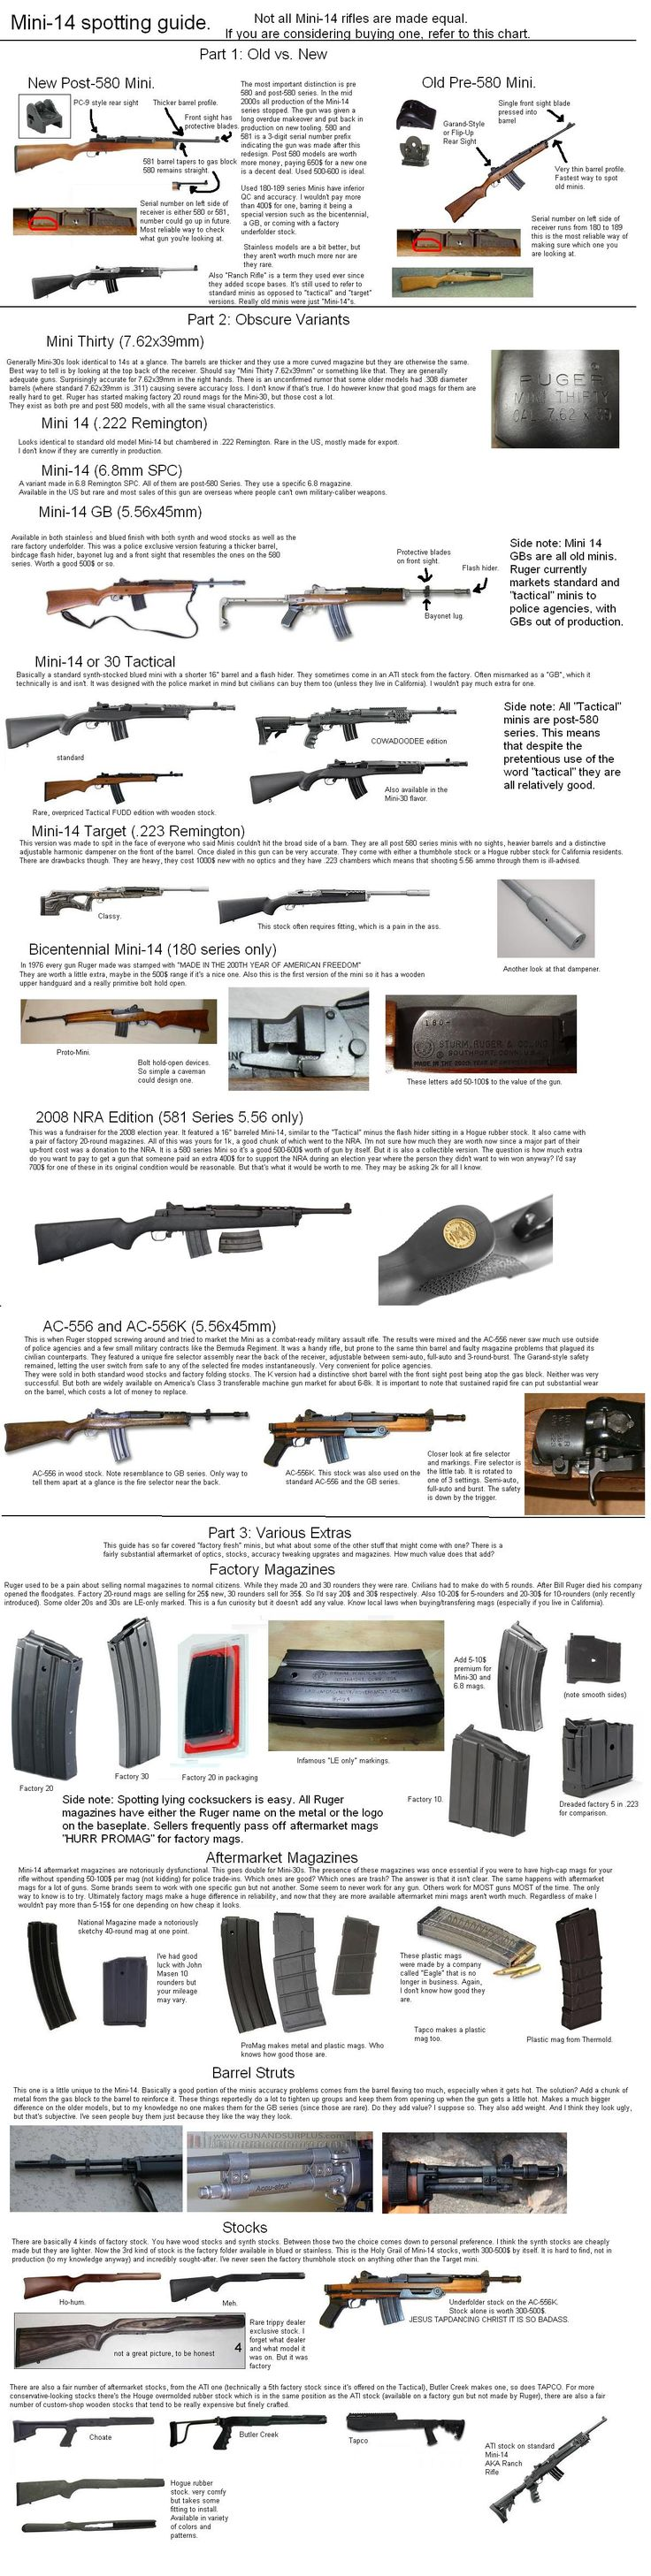 Murder on paper: Glossary on firearms wiki, http://en.wikipedia.org/wiki/Glossary_of_firearms_terms. Here Mini-14 identification and buying guide